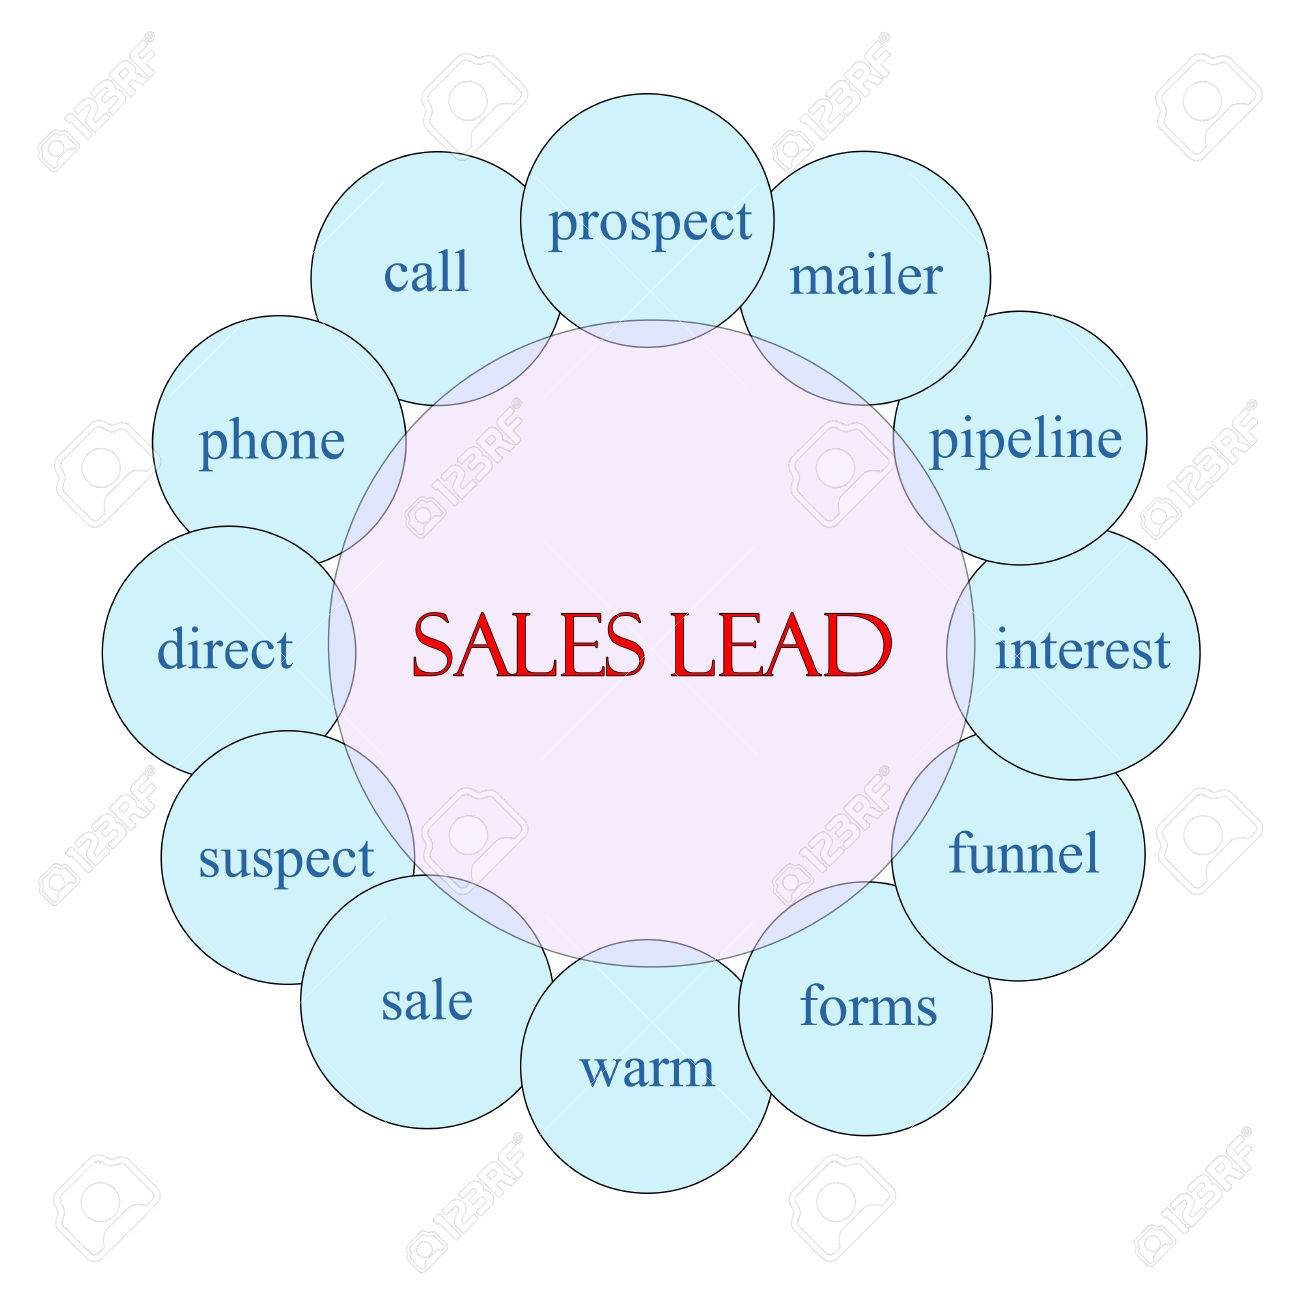 Sales Lead Concept Circular Diagram In Pink And Blue With Great ...